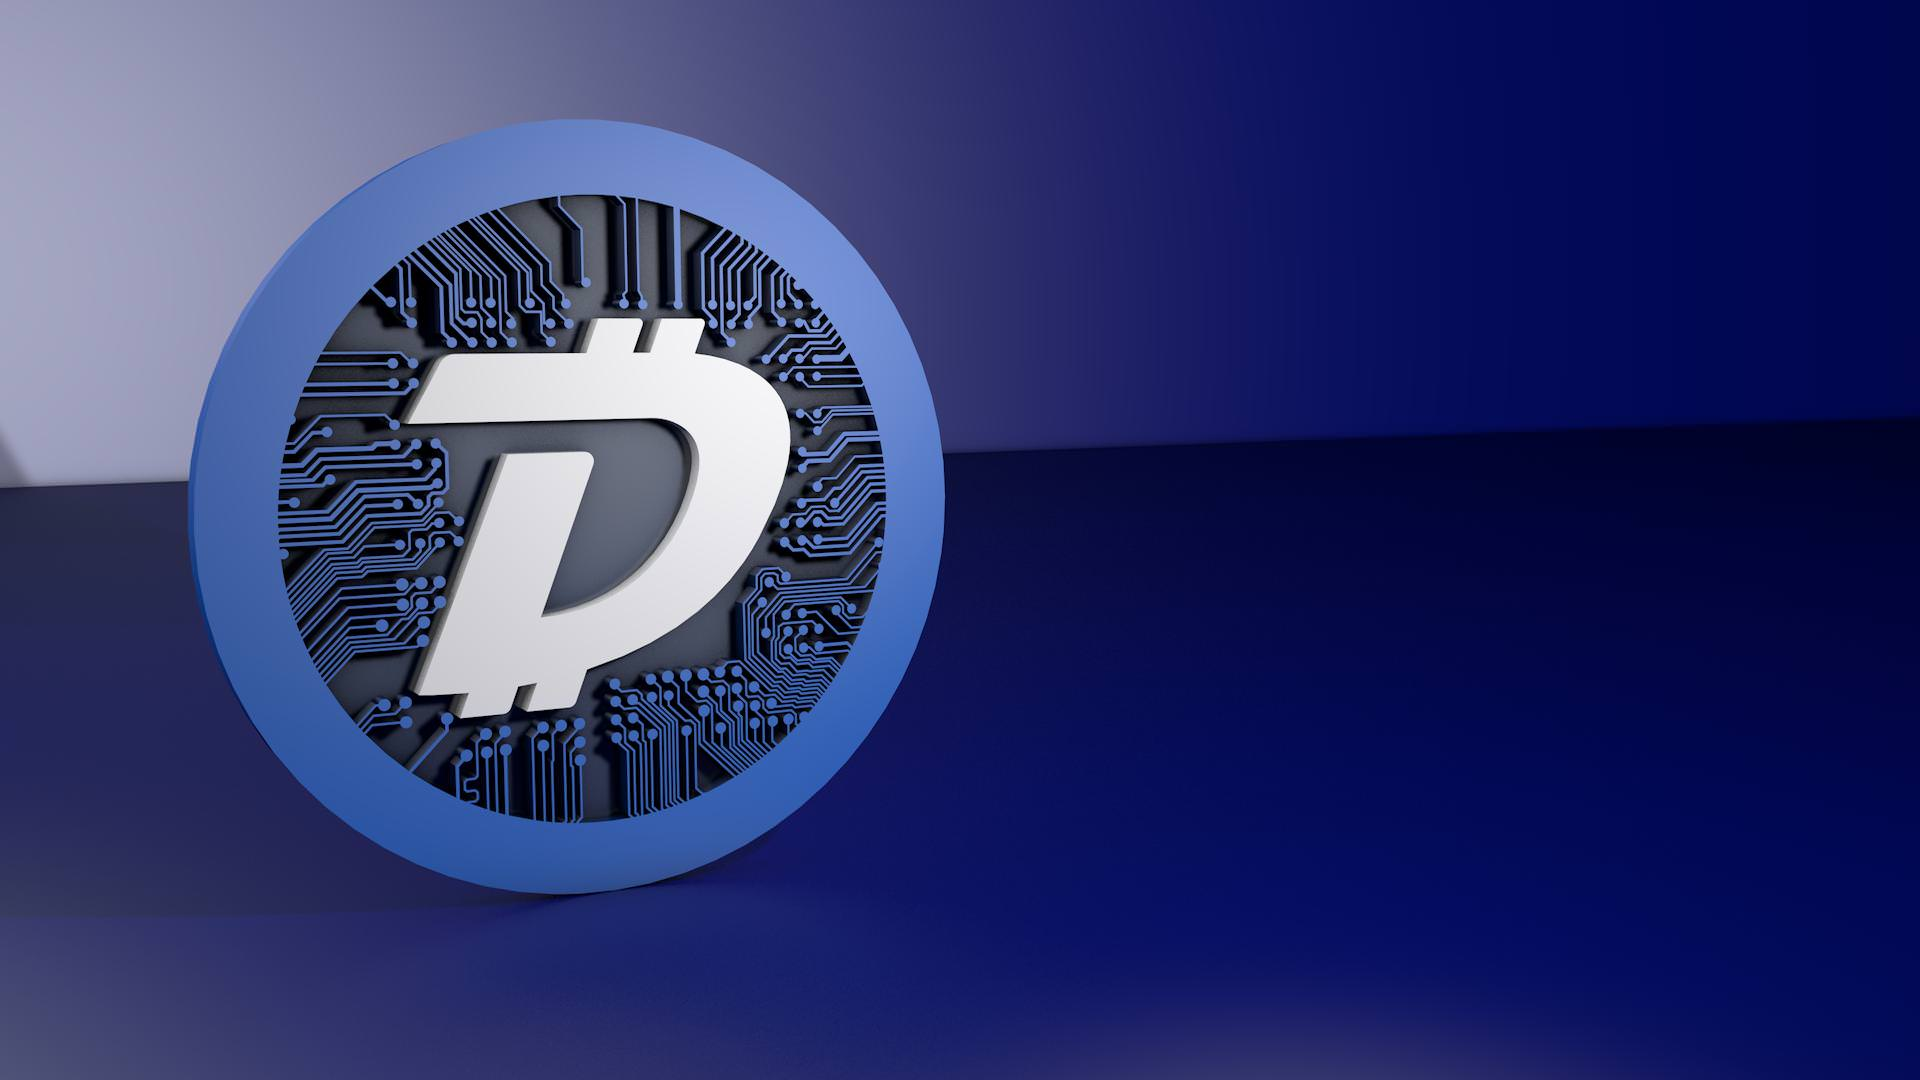 DigiByte (DGB) Price Analysis: Will DGB Continue This Favorable Price Trend?